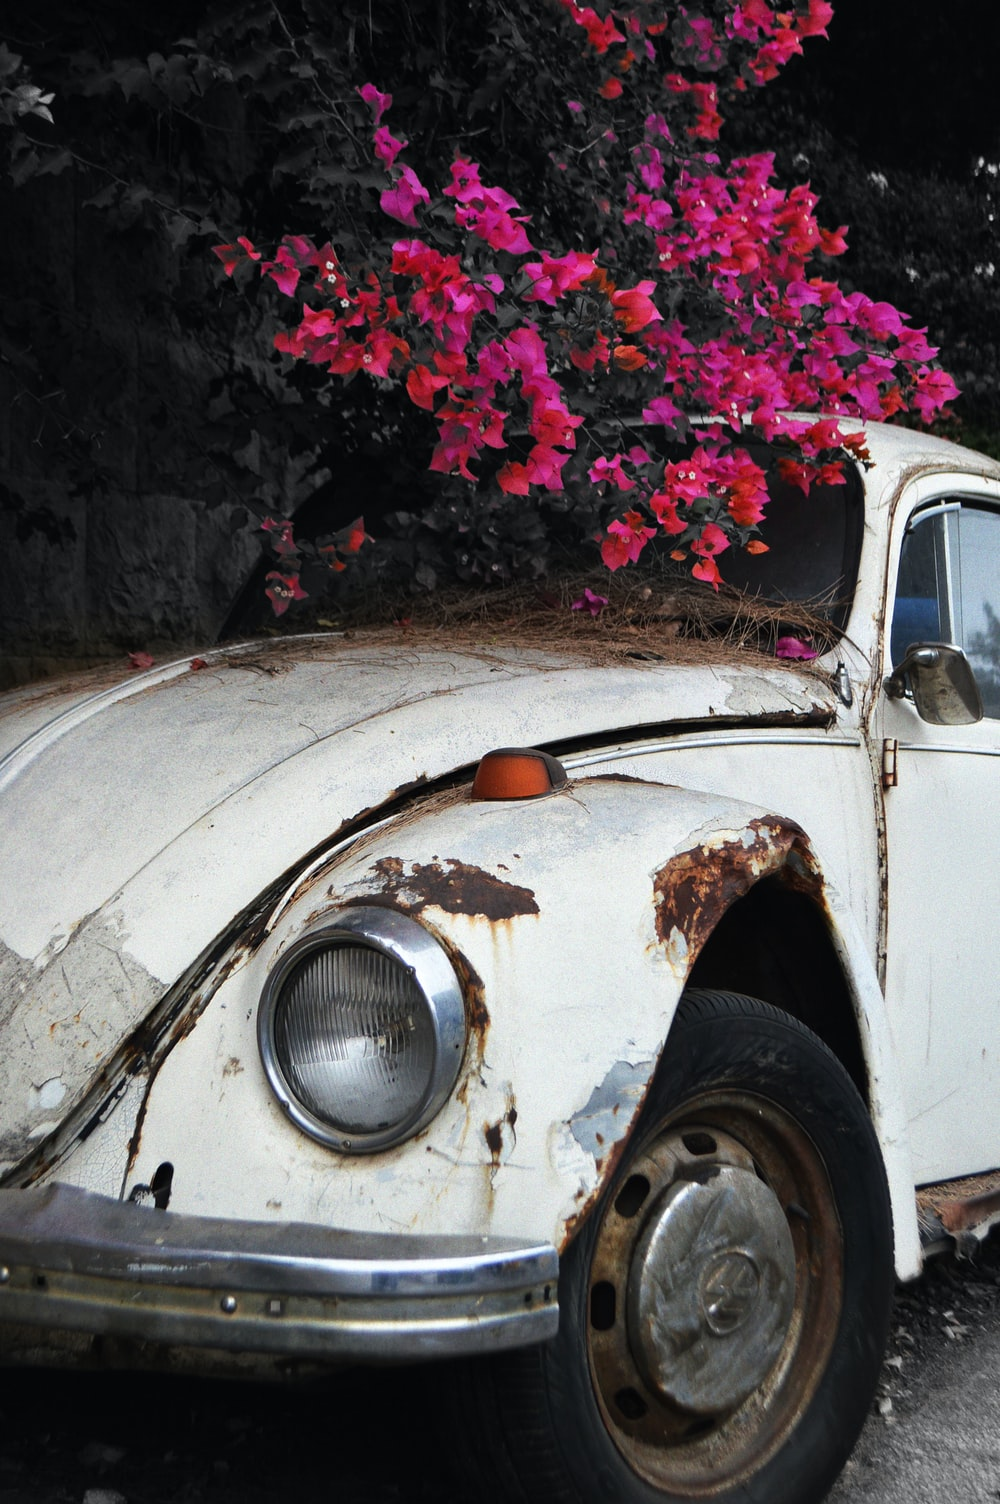 white car with pink flowers